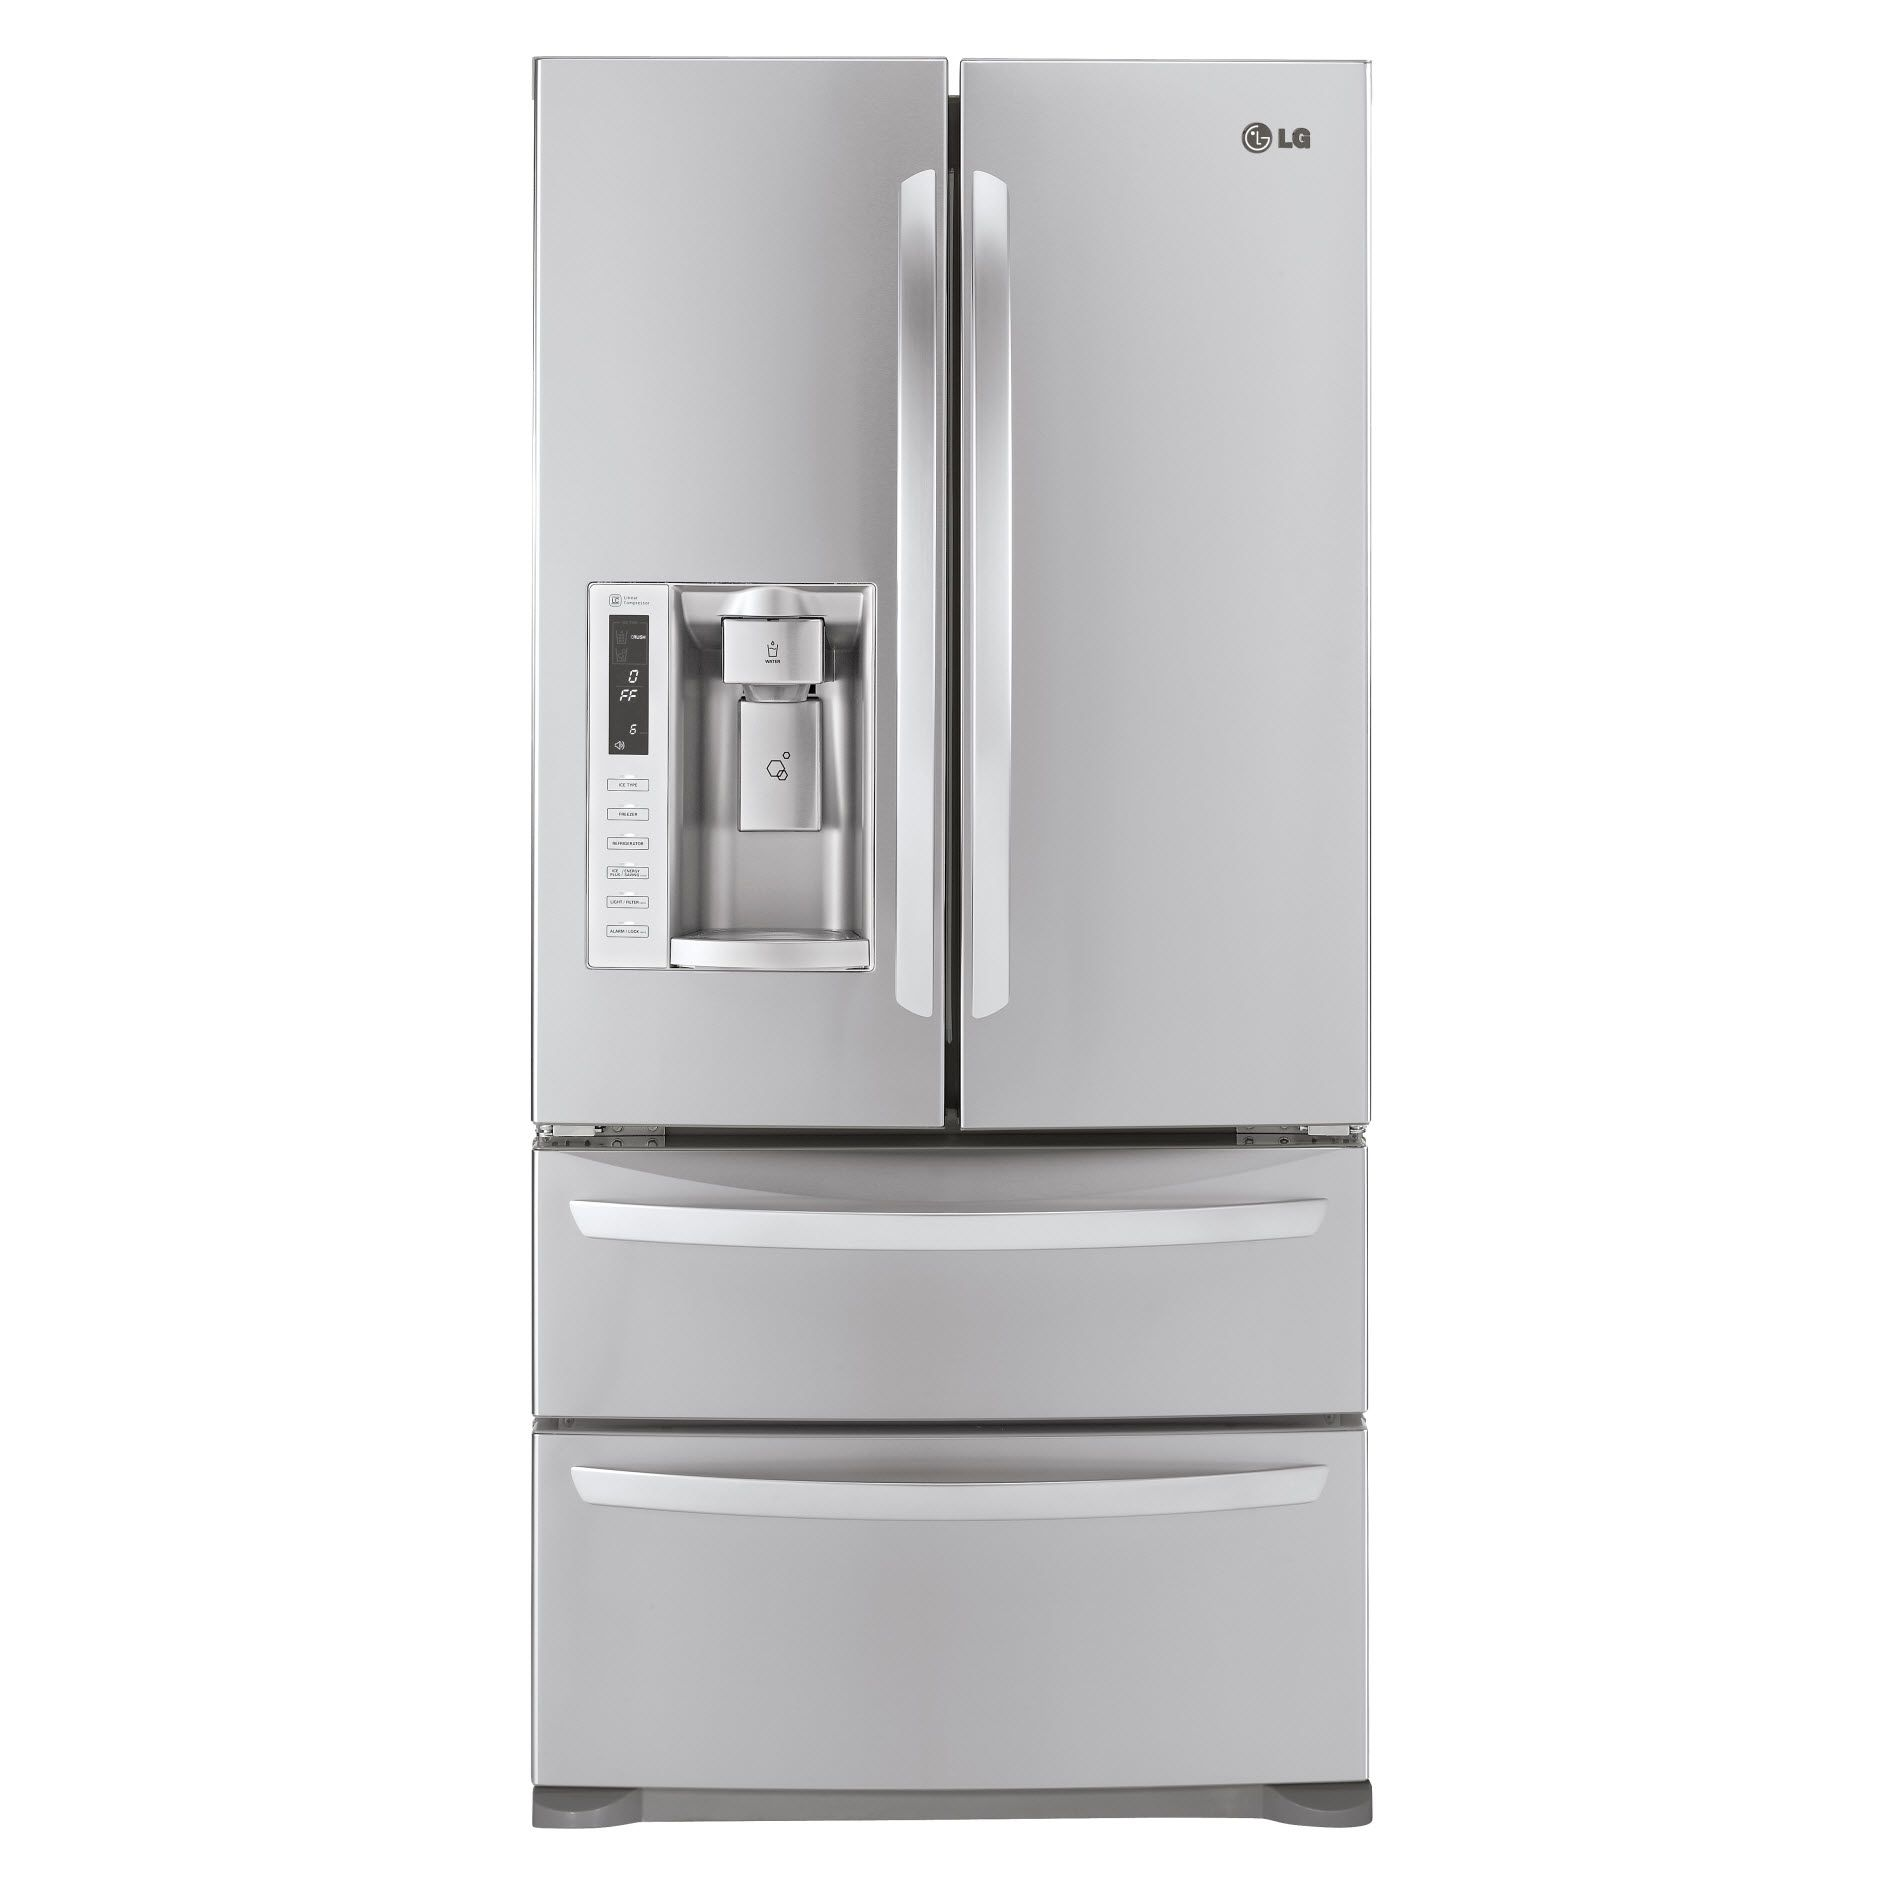 LG 24.7 cu. ft. French-Door Bottom-Freezer Refrigerator at Sears.com